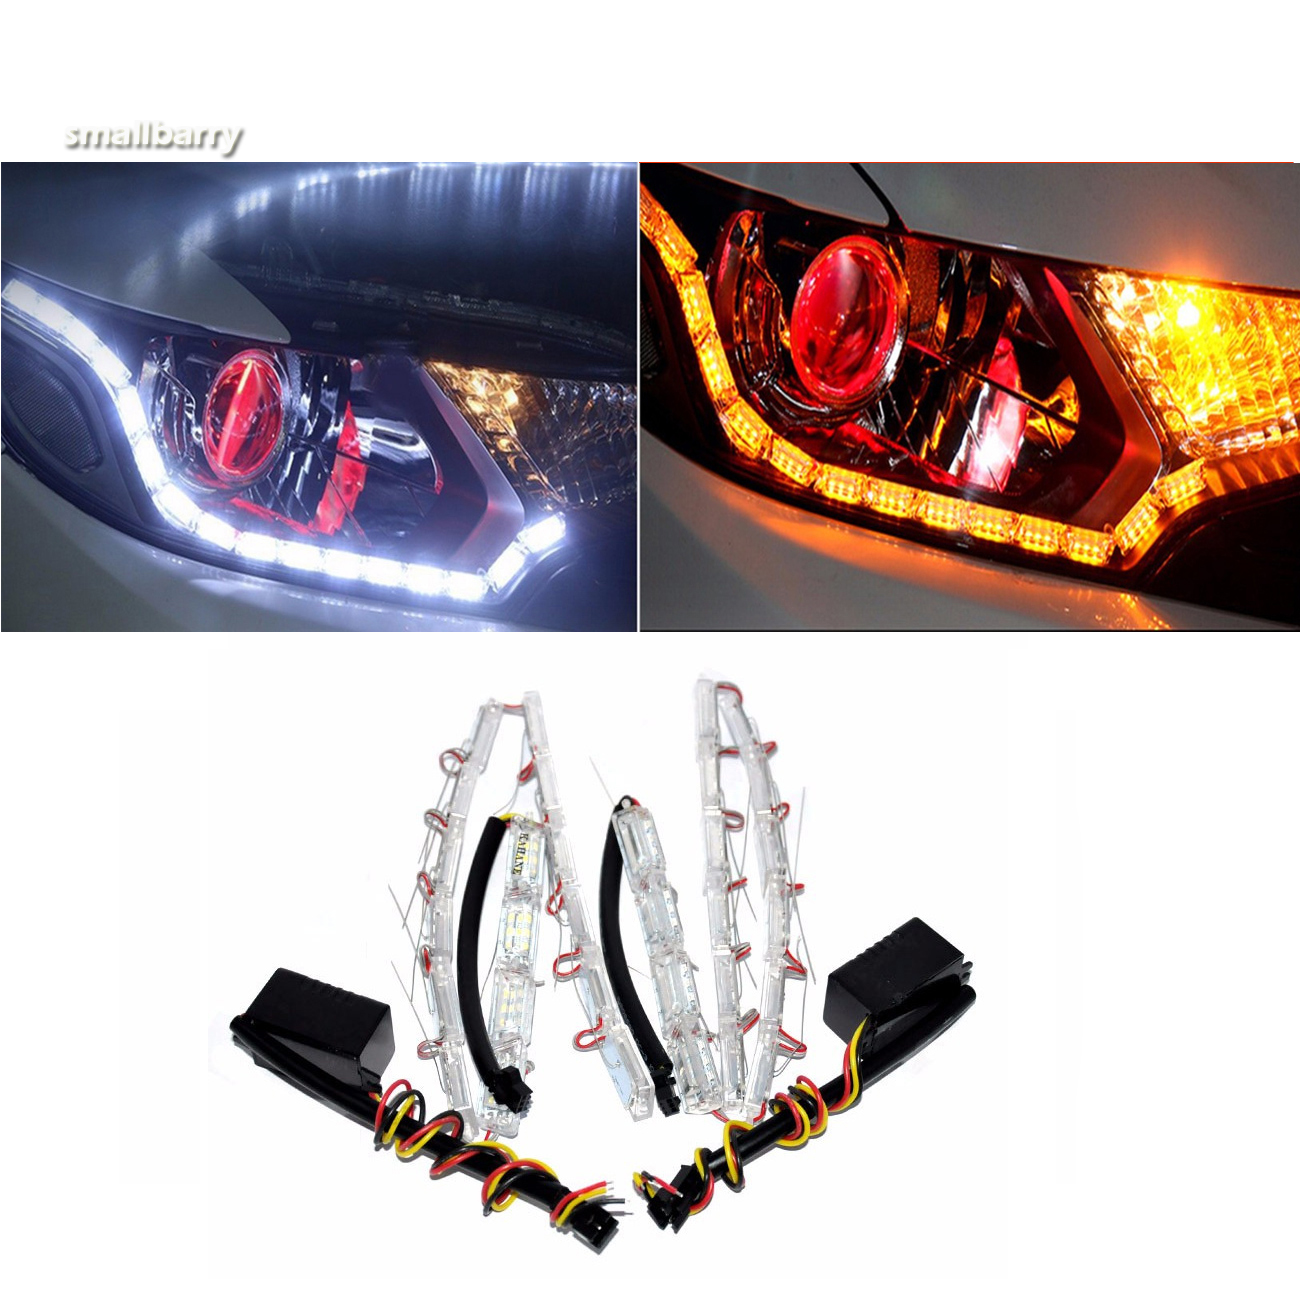 2x car flexible light Waterproof DRL LED Headlight Flasher Dual Color DRL Turn Signal White/